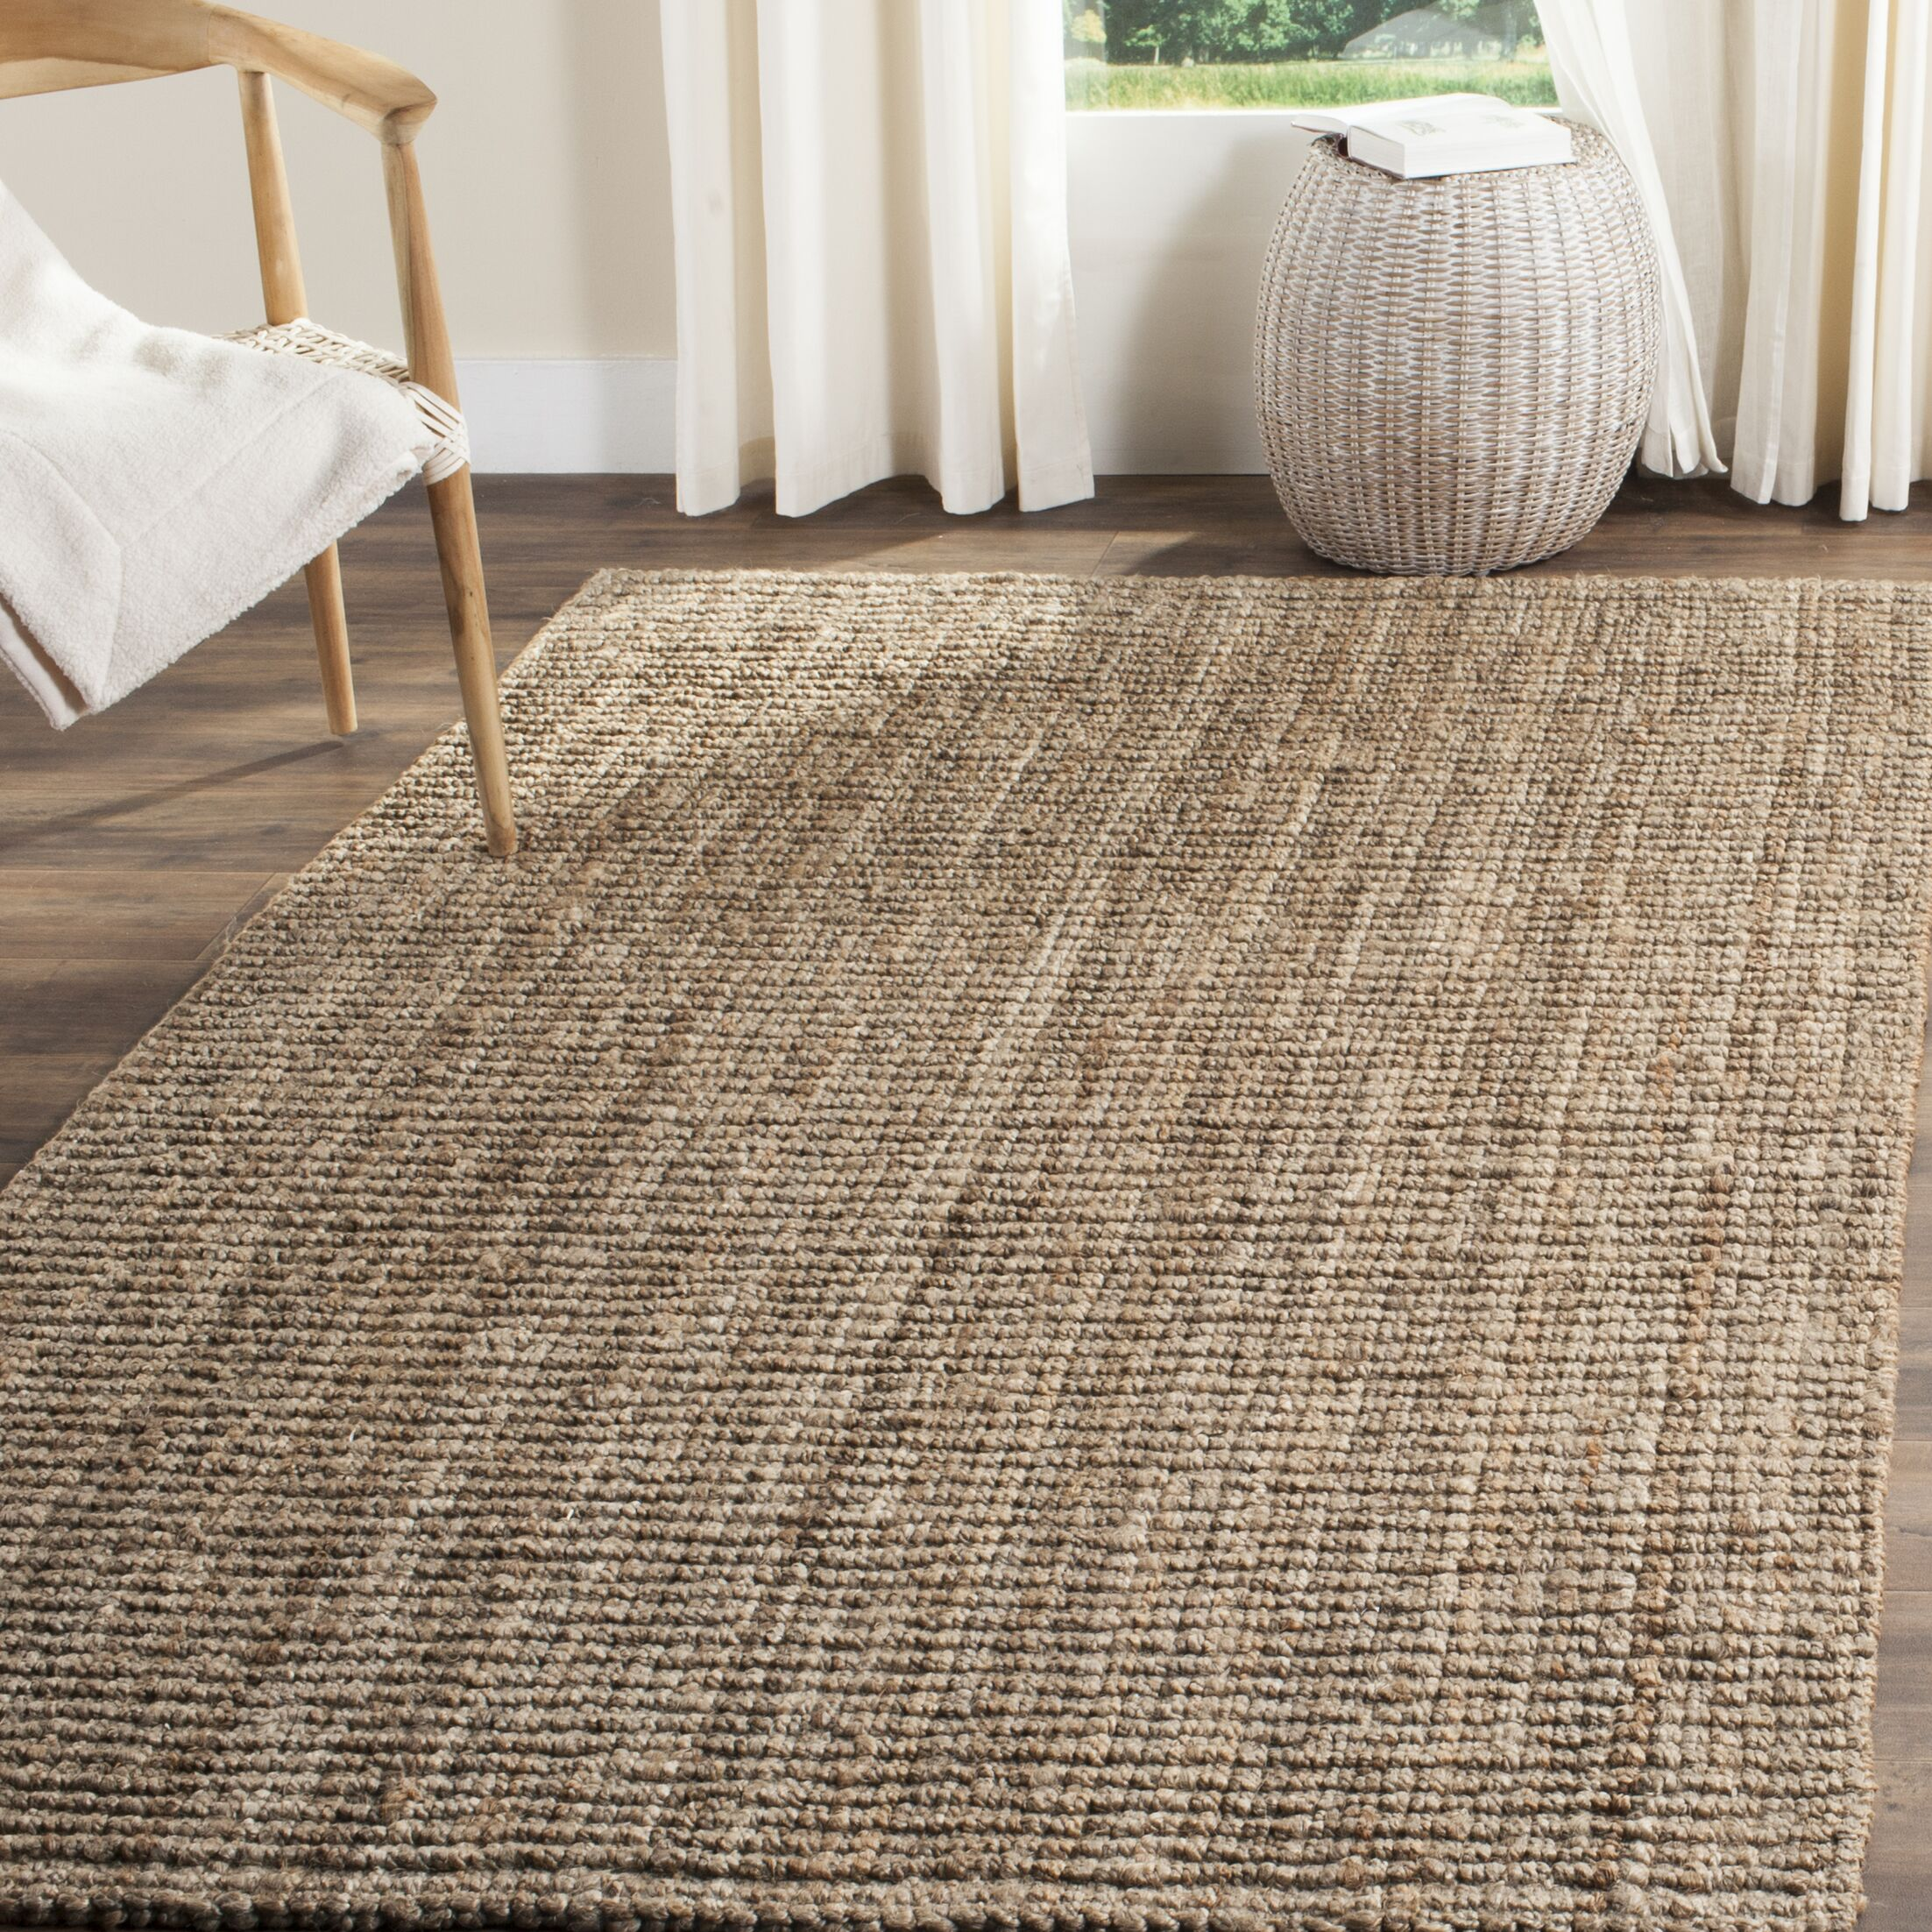 Nilles Hand-Woven Natural/Grey Area Rug Rug Size: Rectangle 8' x 10'